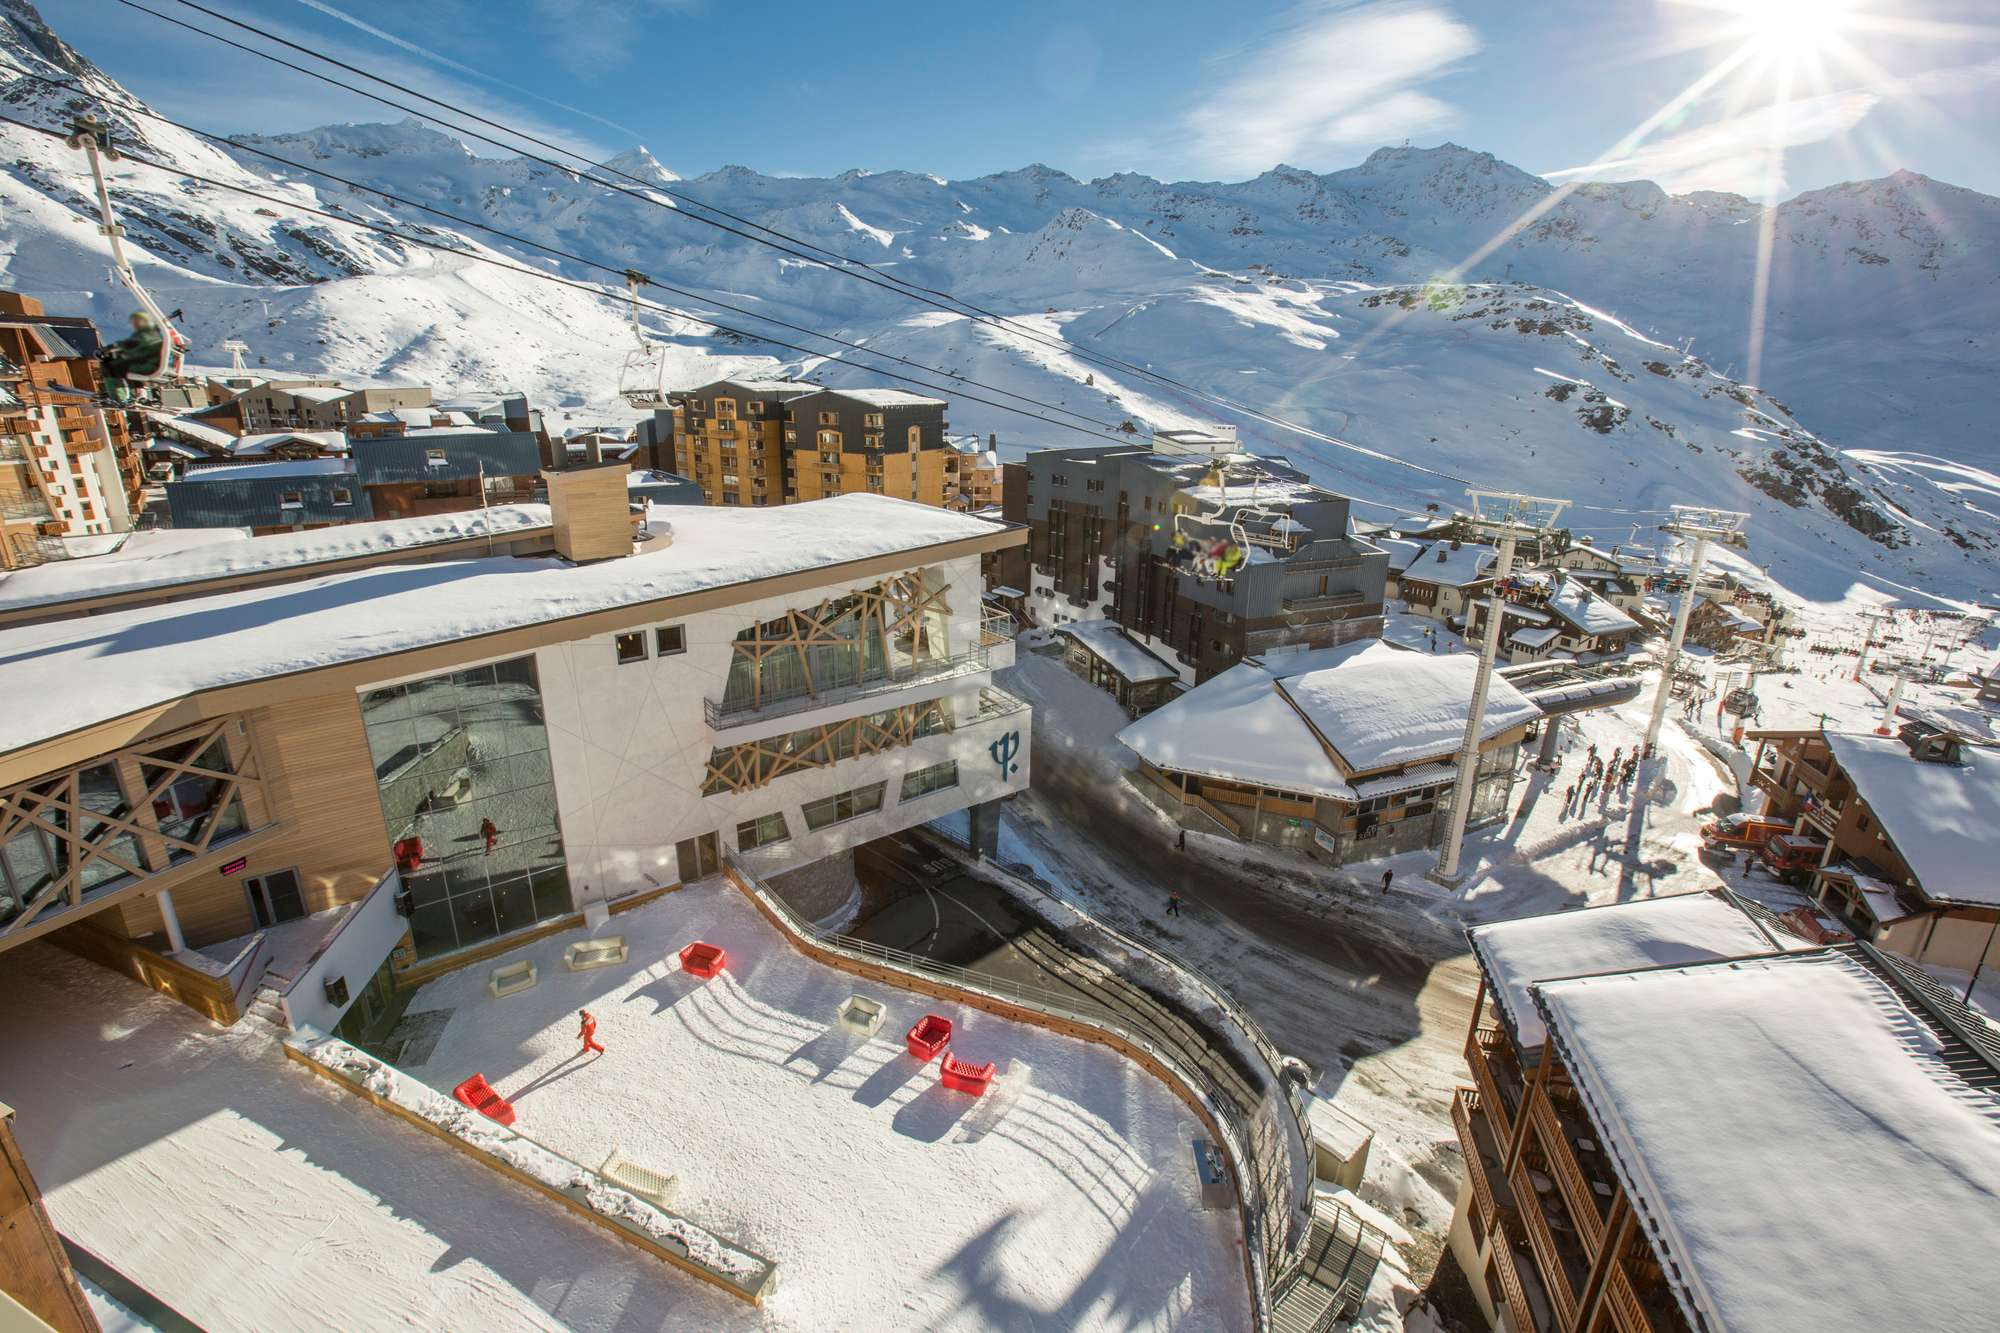 Https  ns.clubmed.com icp 1 media 01.villages 1.3montagne val thorens sensations 48 photos vthca115059